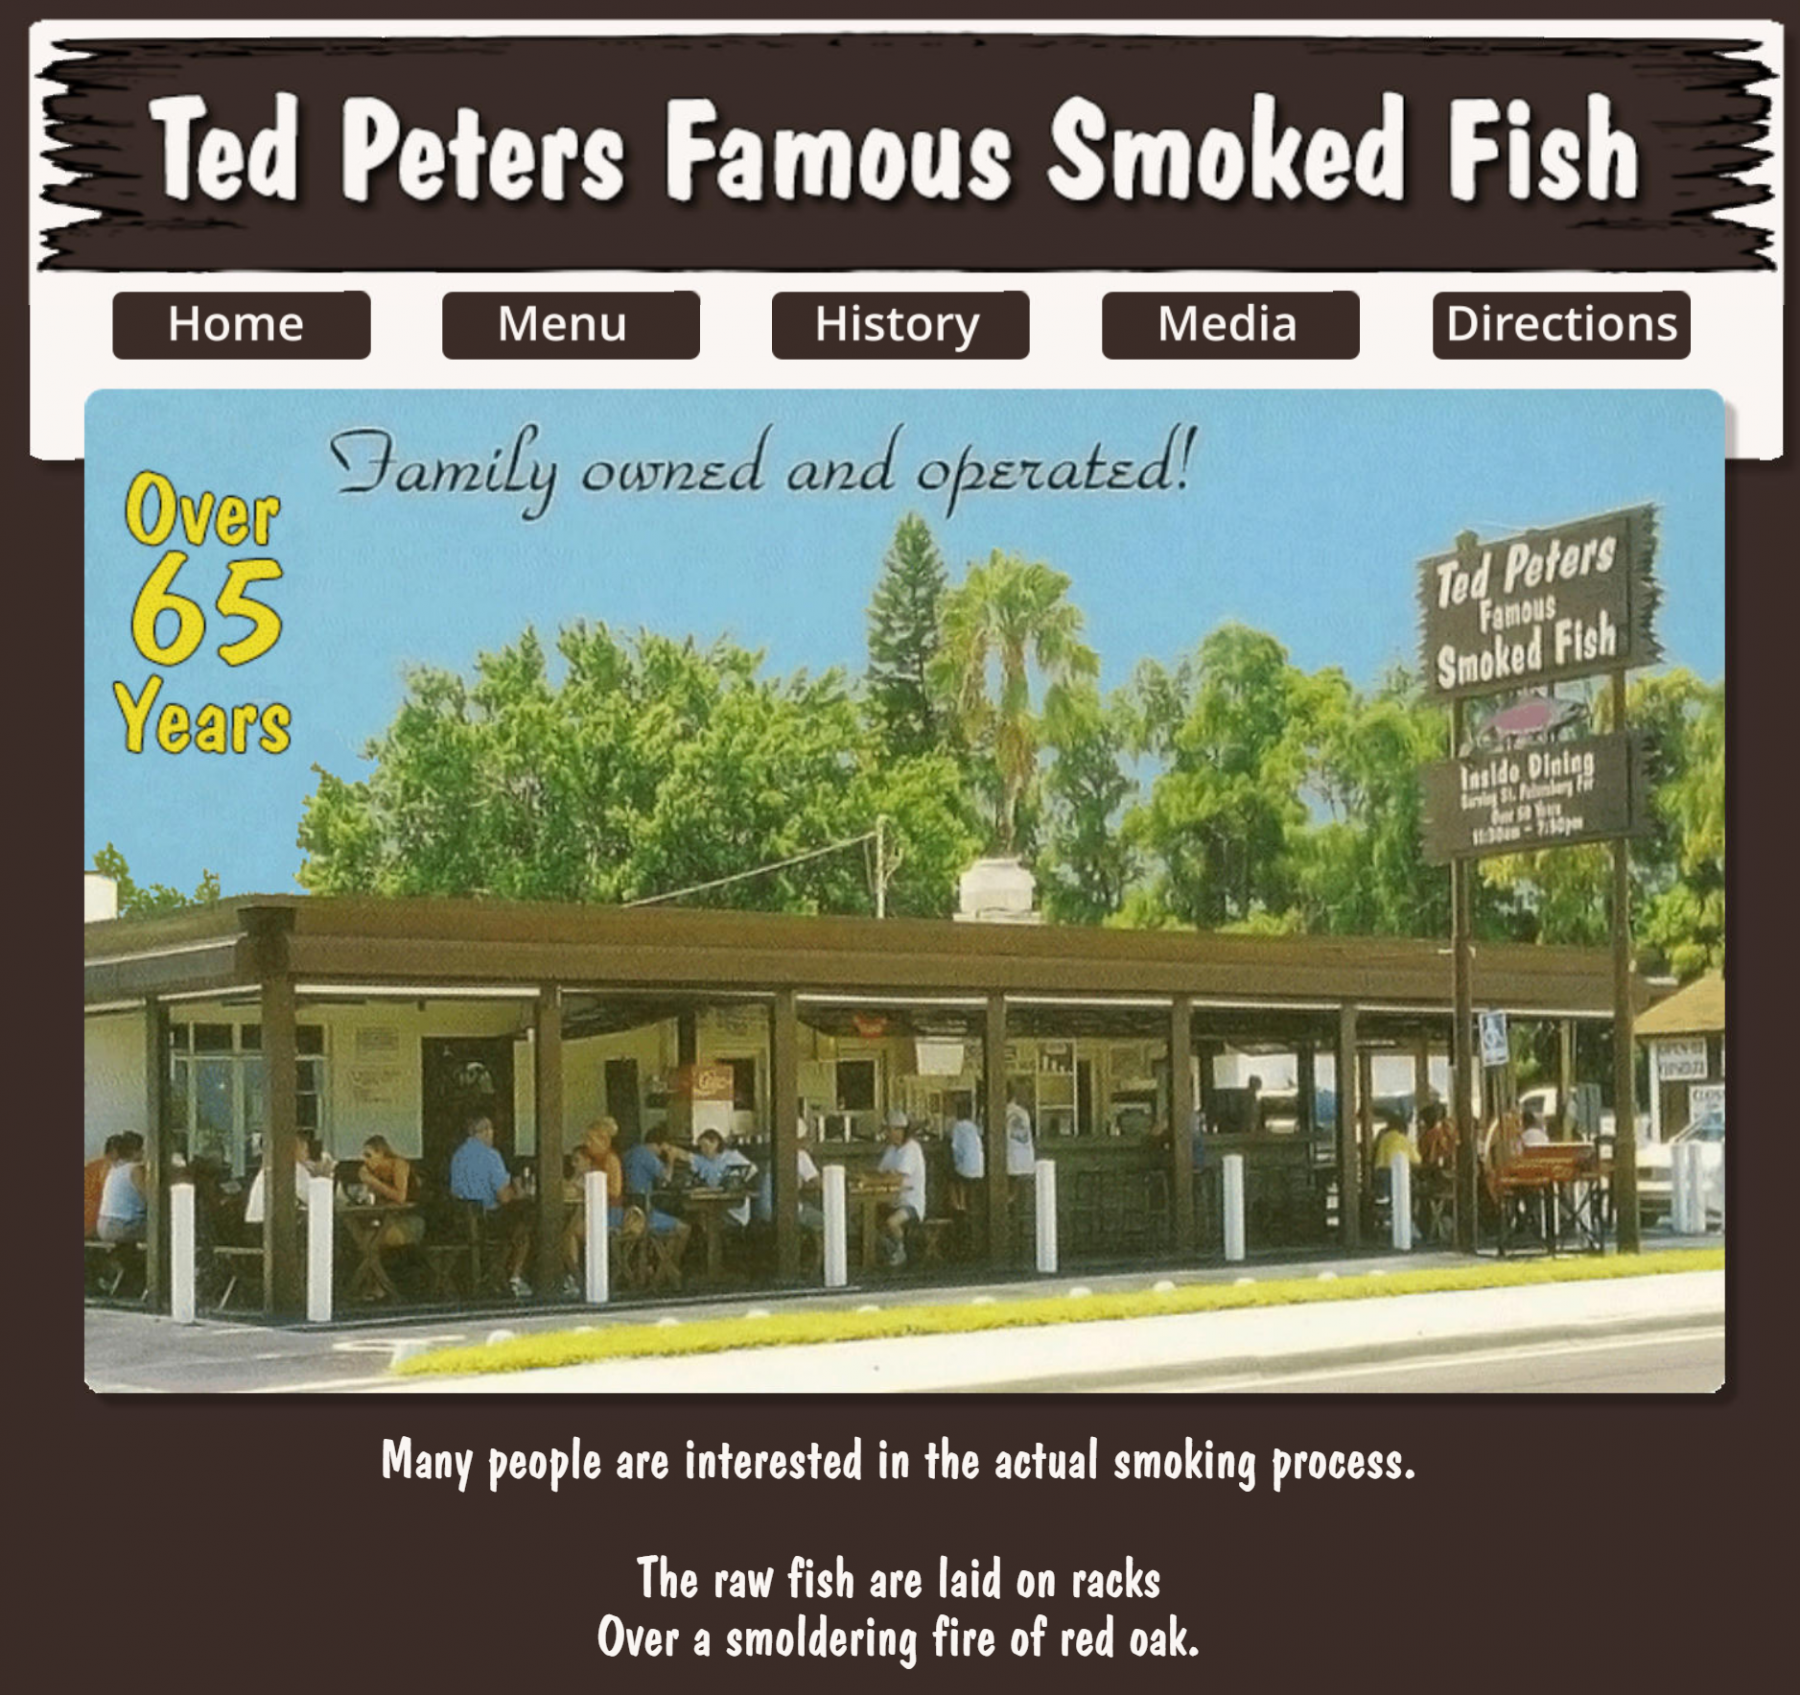 Ted Peter's Famous Smoked Fish